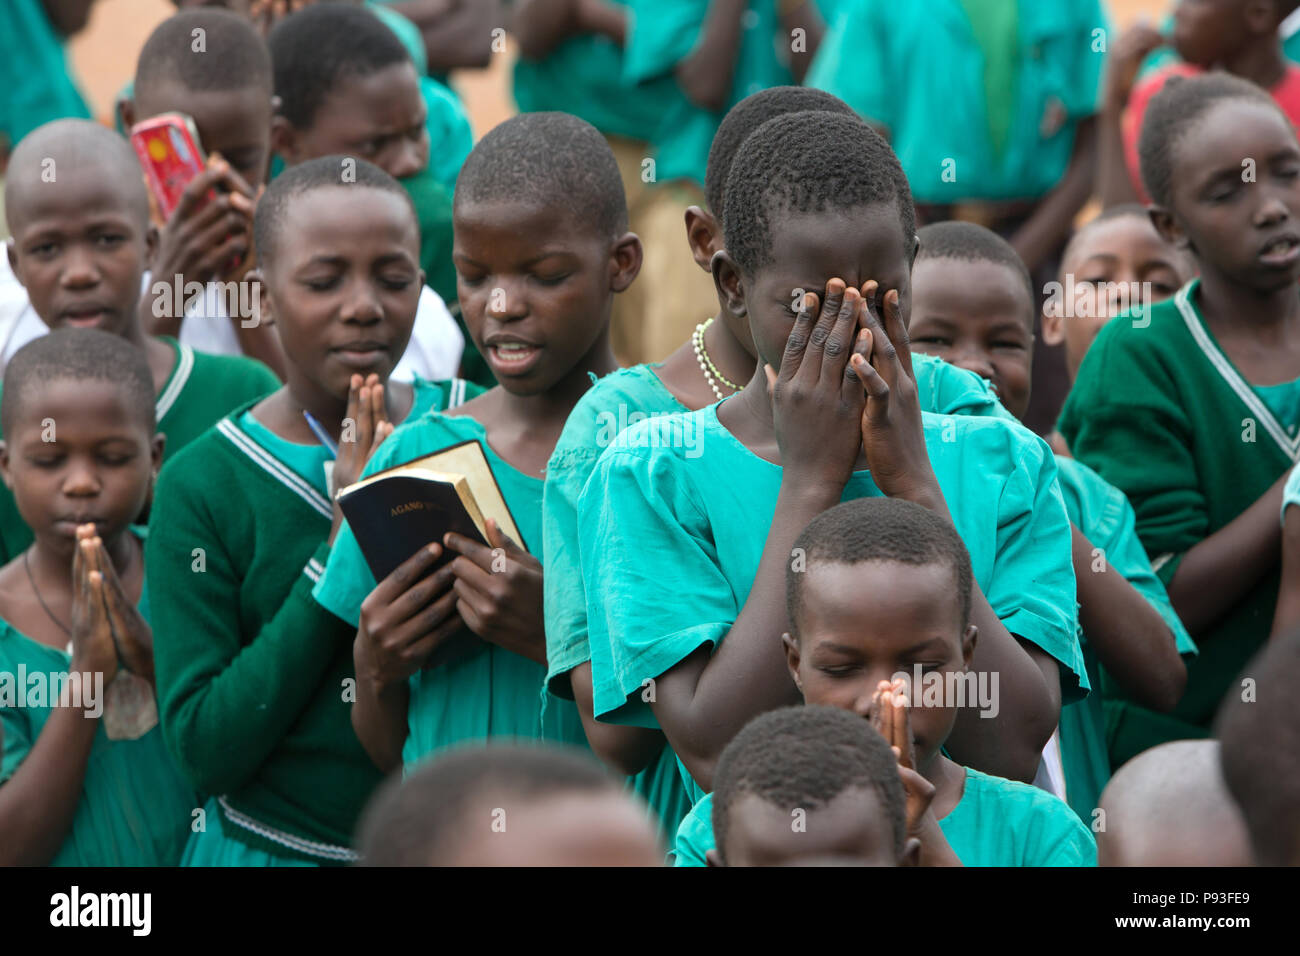 Bombo, Uganda - Praying students at the school appeal in the schoolyard of St. Joseph's Bombo mixed primary school. - Stock Image